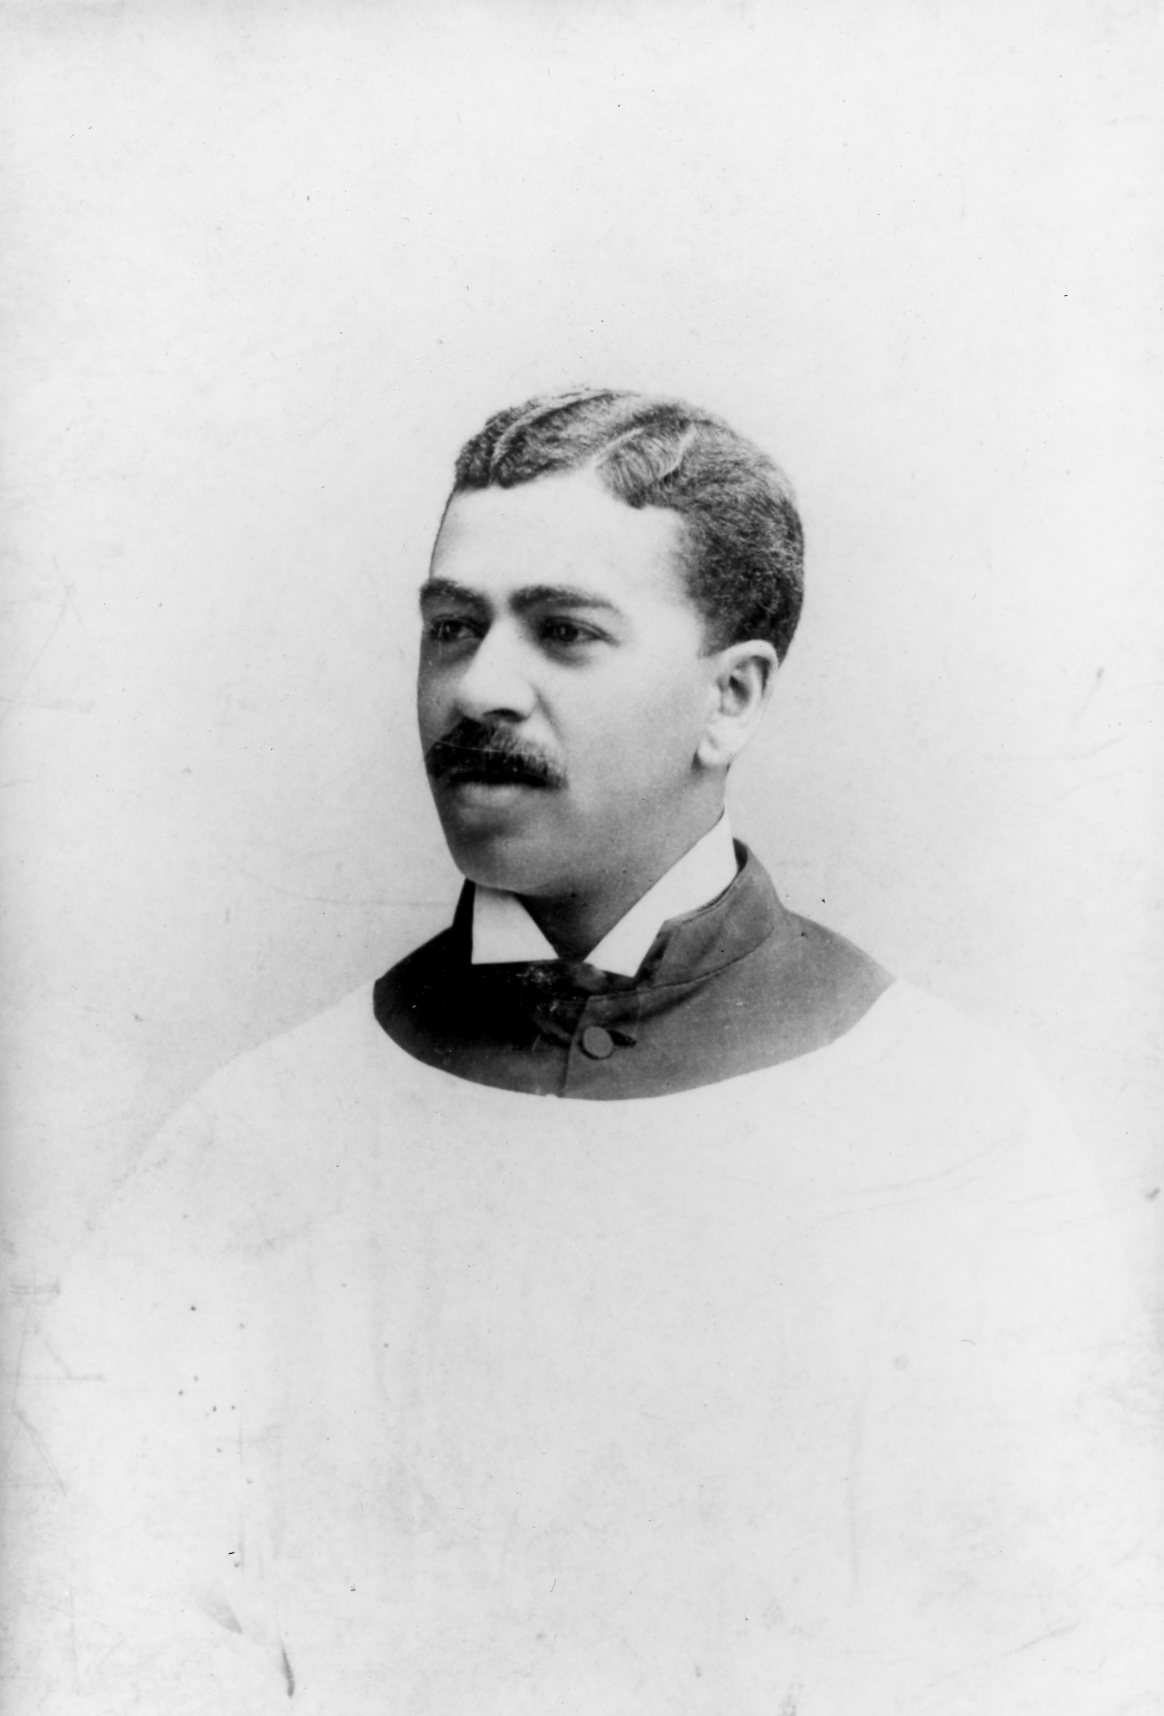 Harry T. Burleigh, African-American composer, arranger and professional singer. Photo courtesy of Jean E. Snyder.